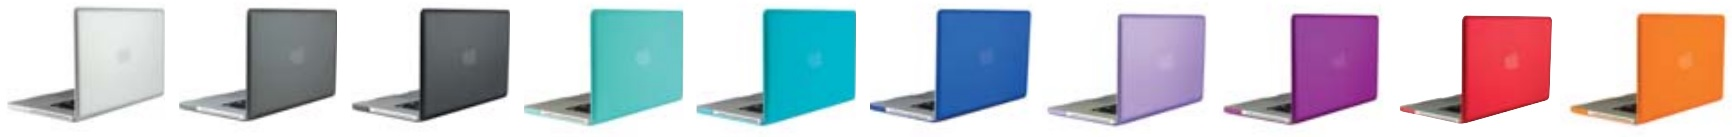 LogiLink_MacBook_Protection_Cover